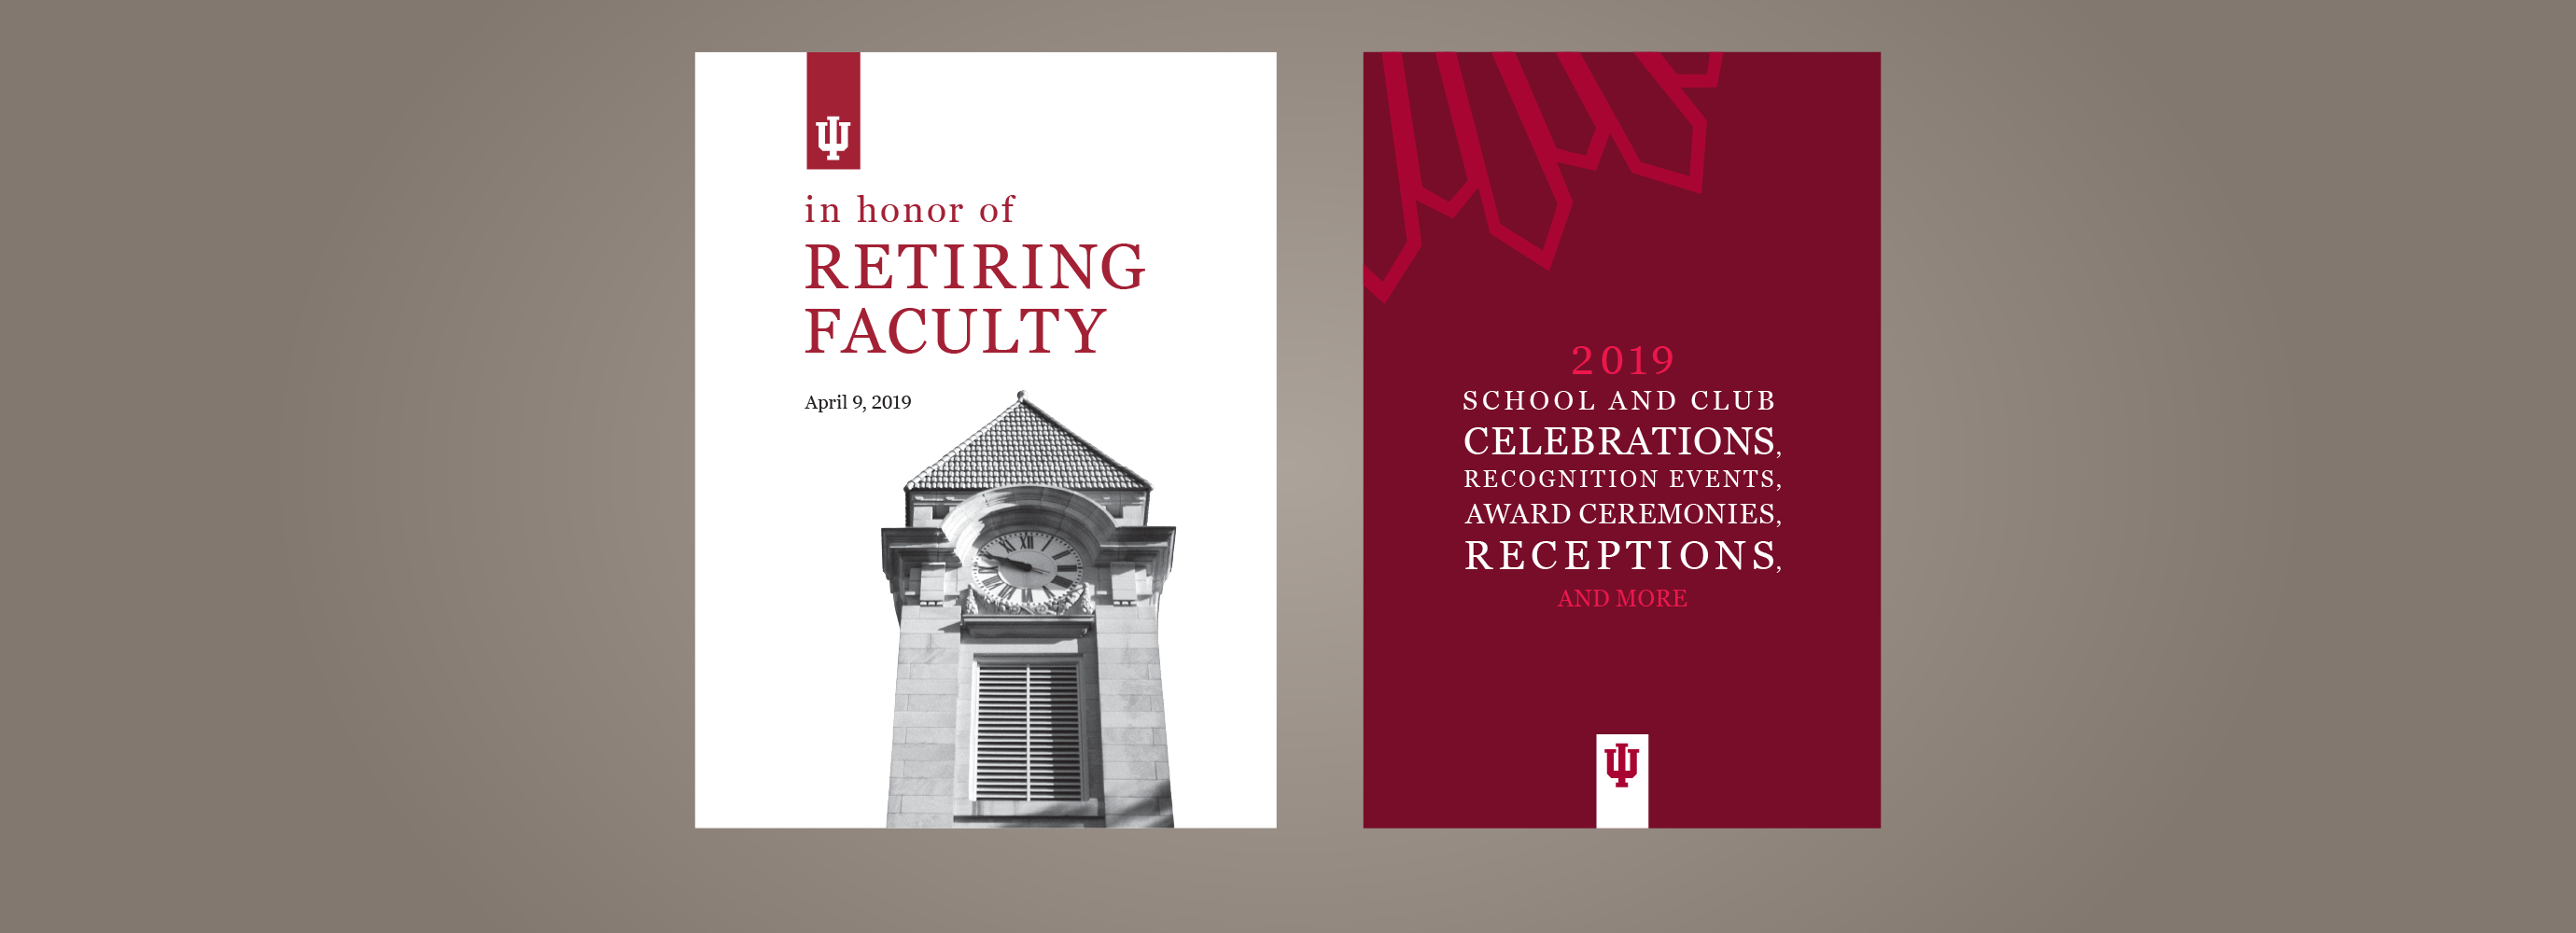 Two event programs—one for a retiring faculty event and one for school and club events and awards